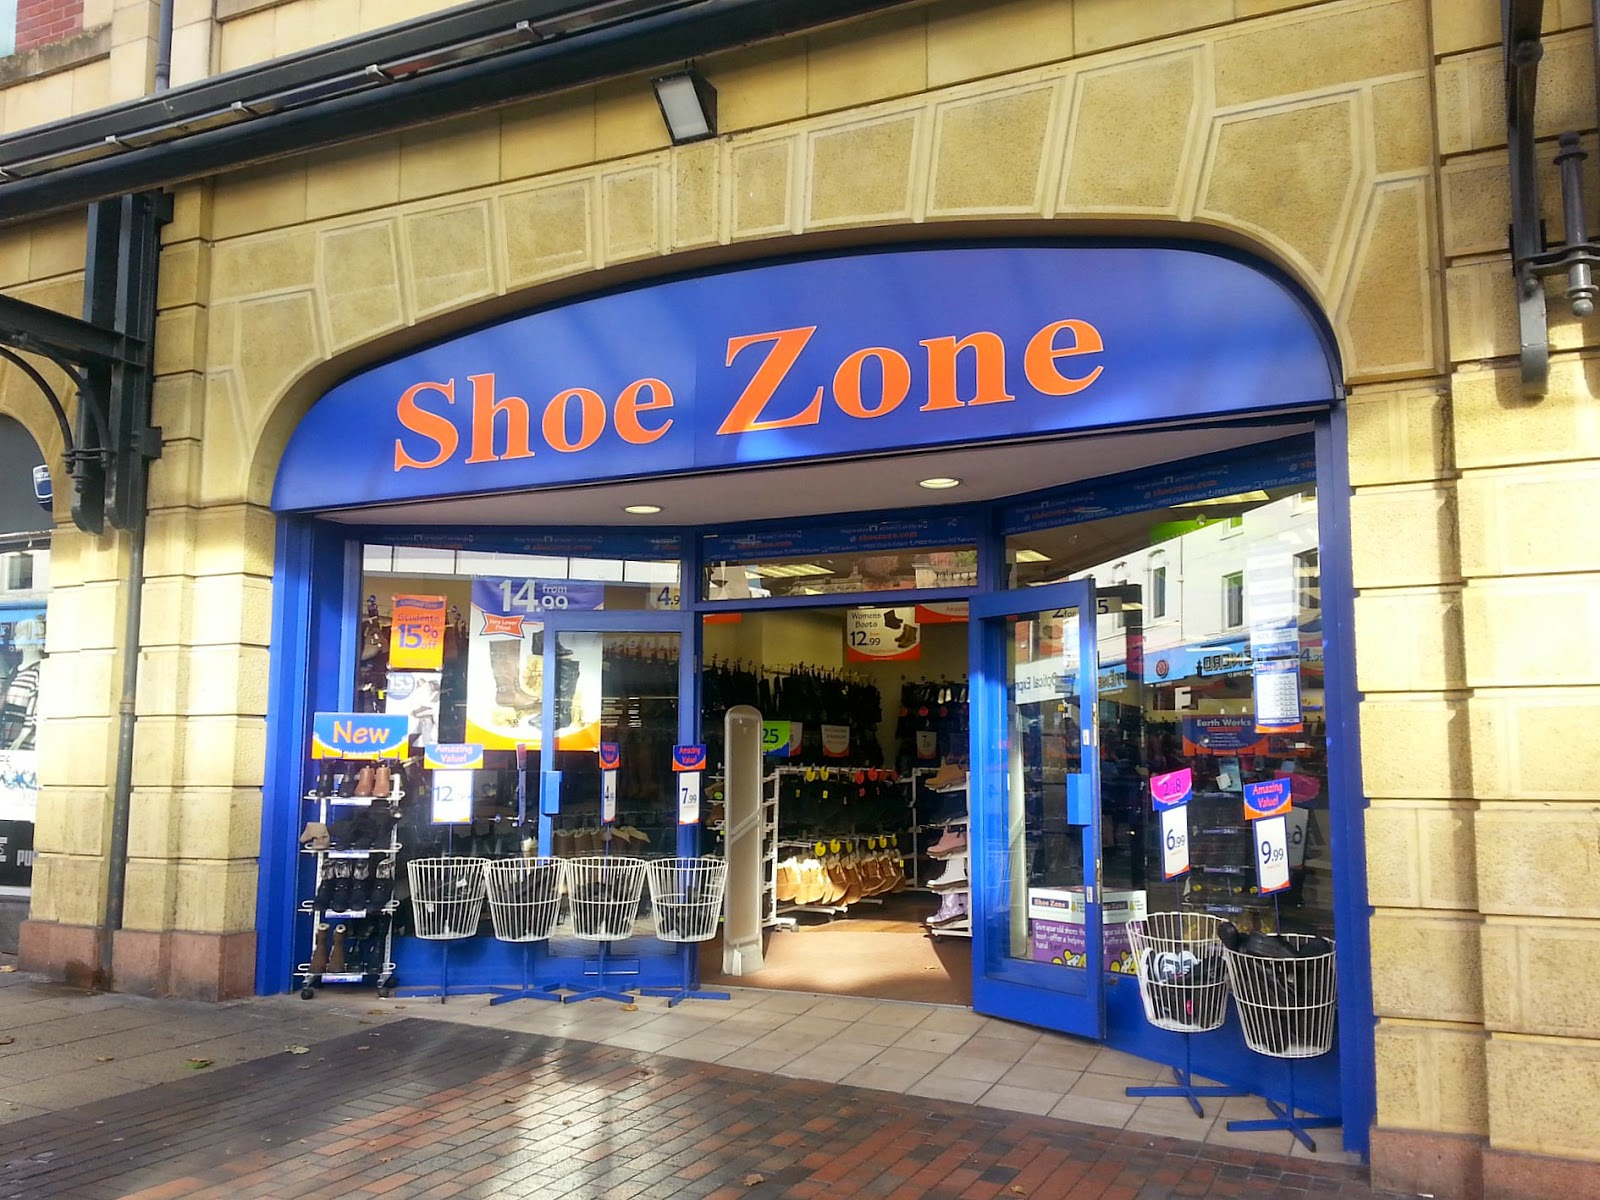 Shoe Zone affordable shoes, lady shoes, kids shoes